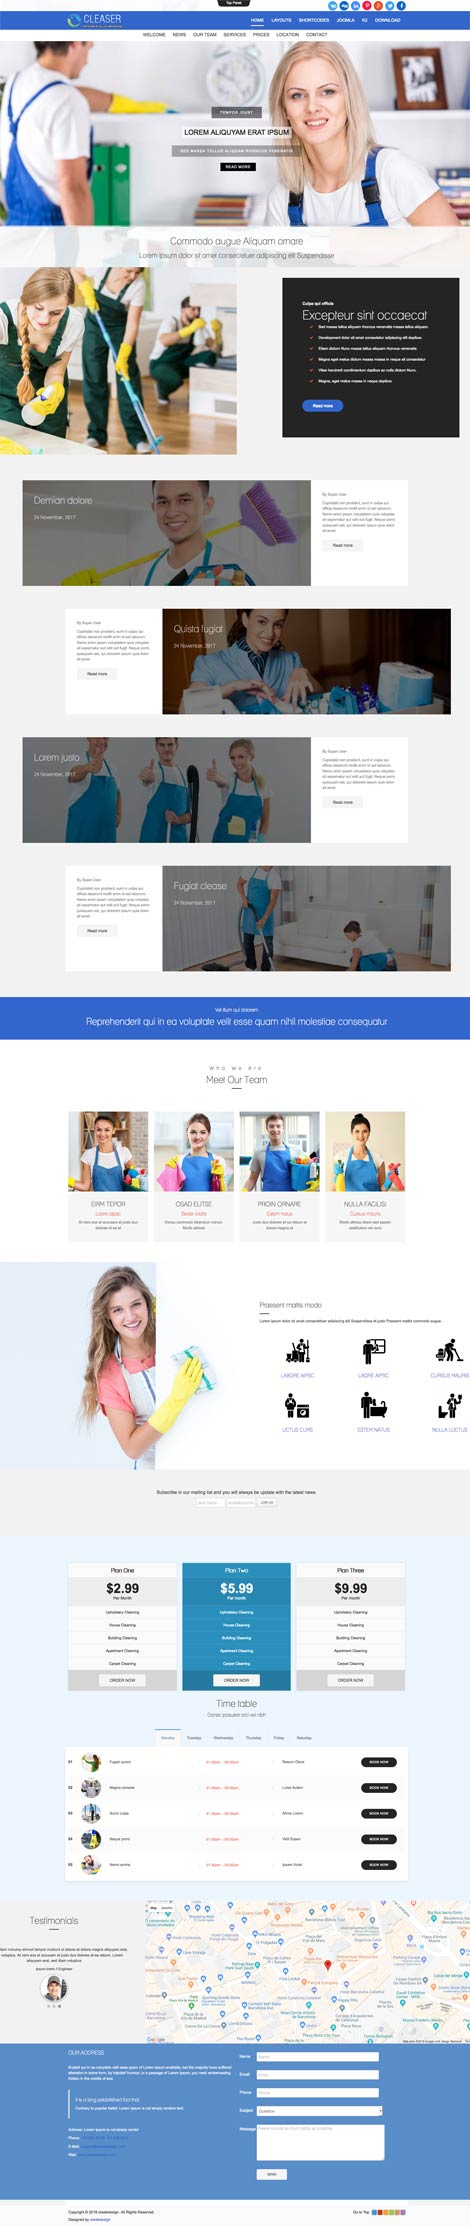 Ol Cleaser - Cleaning Services Joomla Template